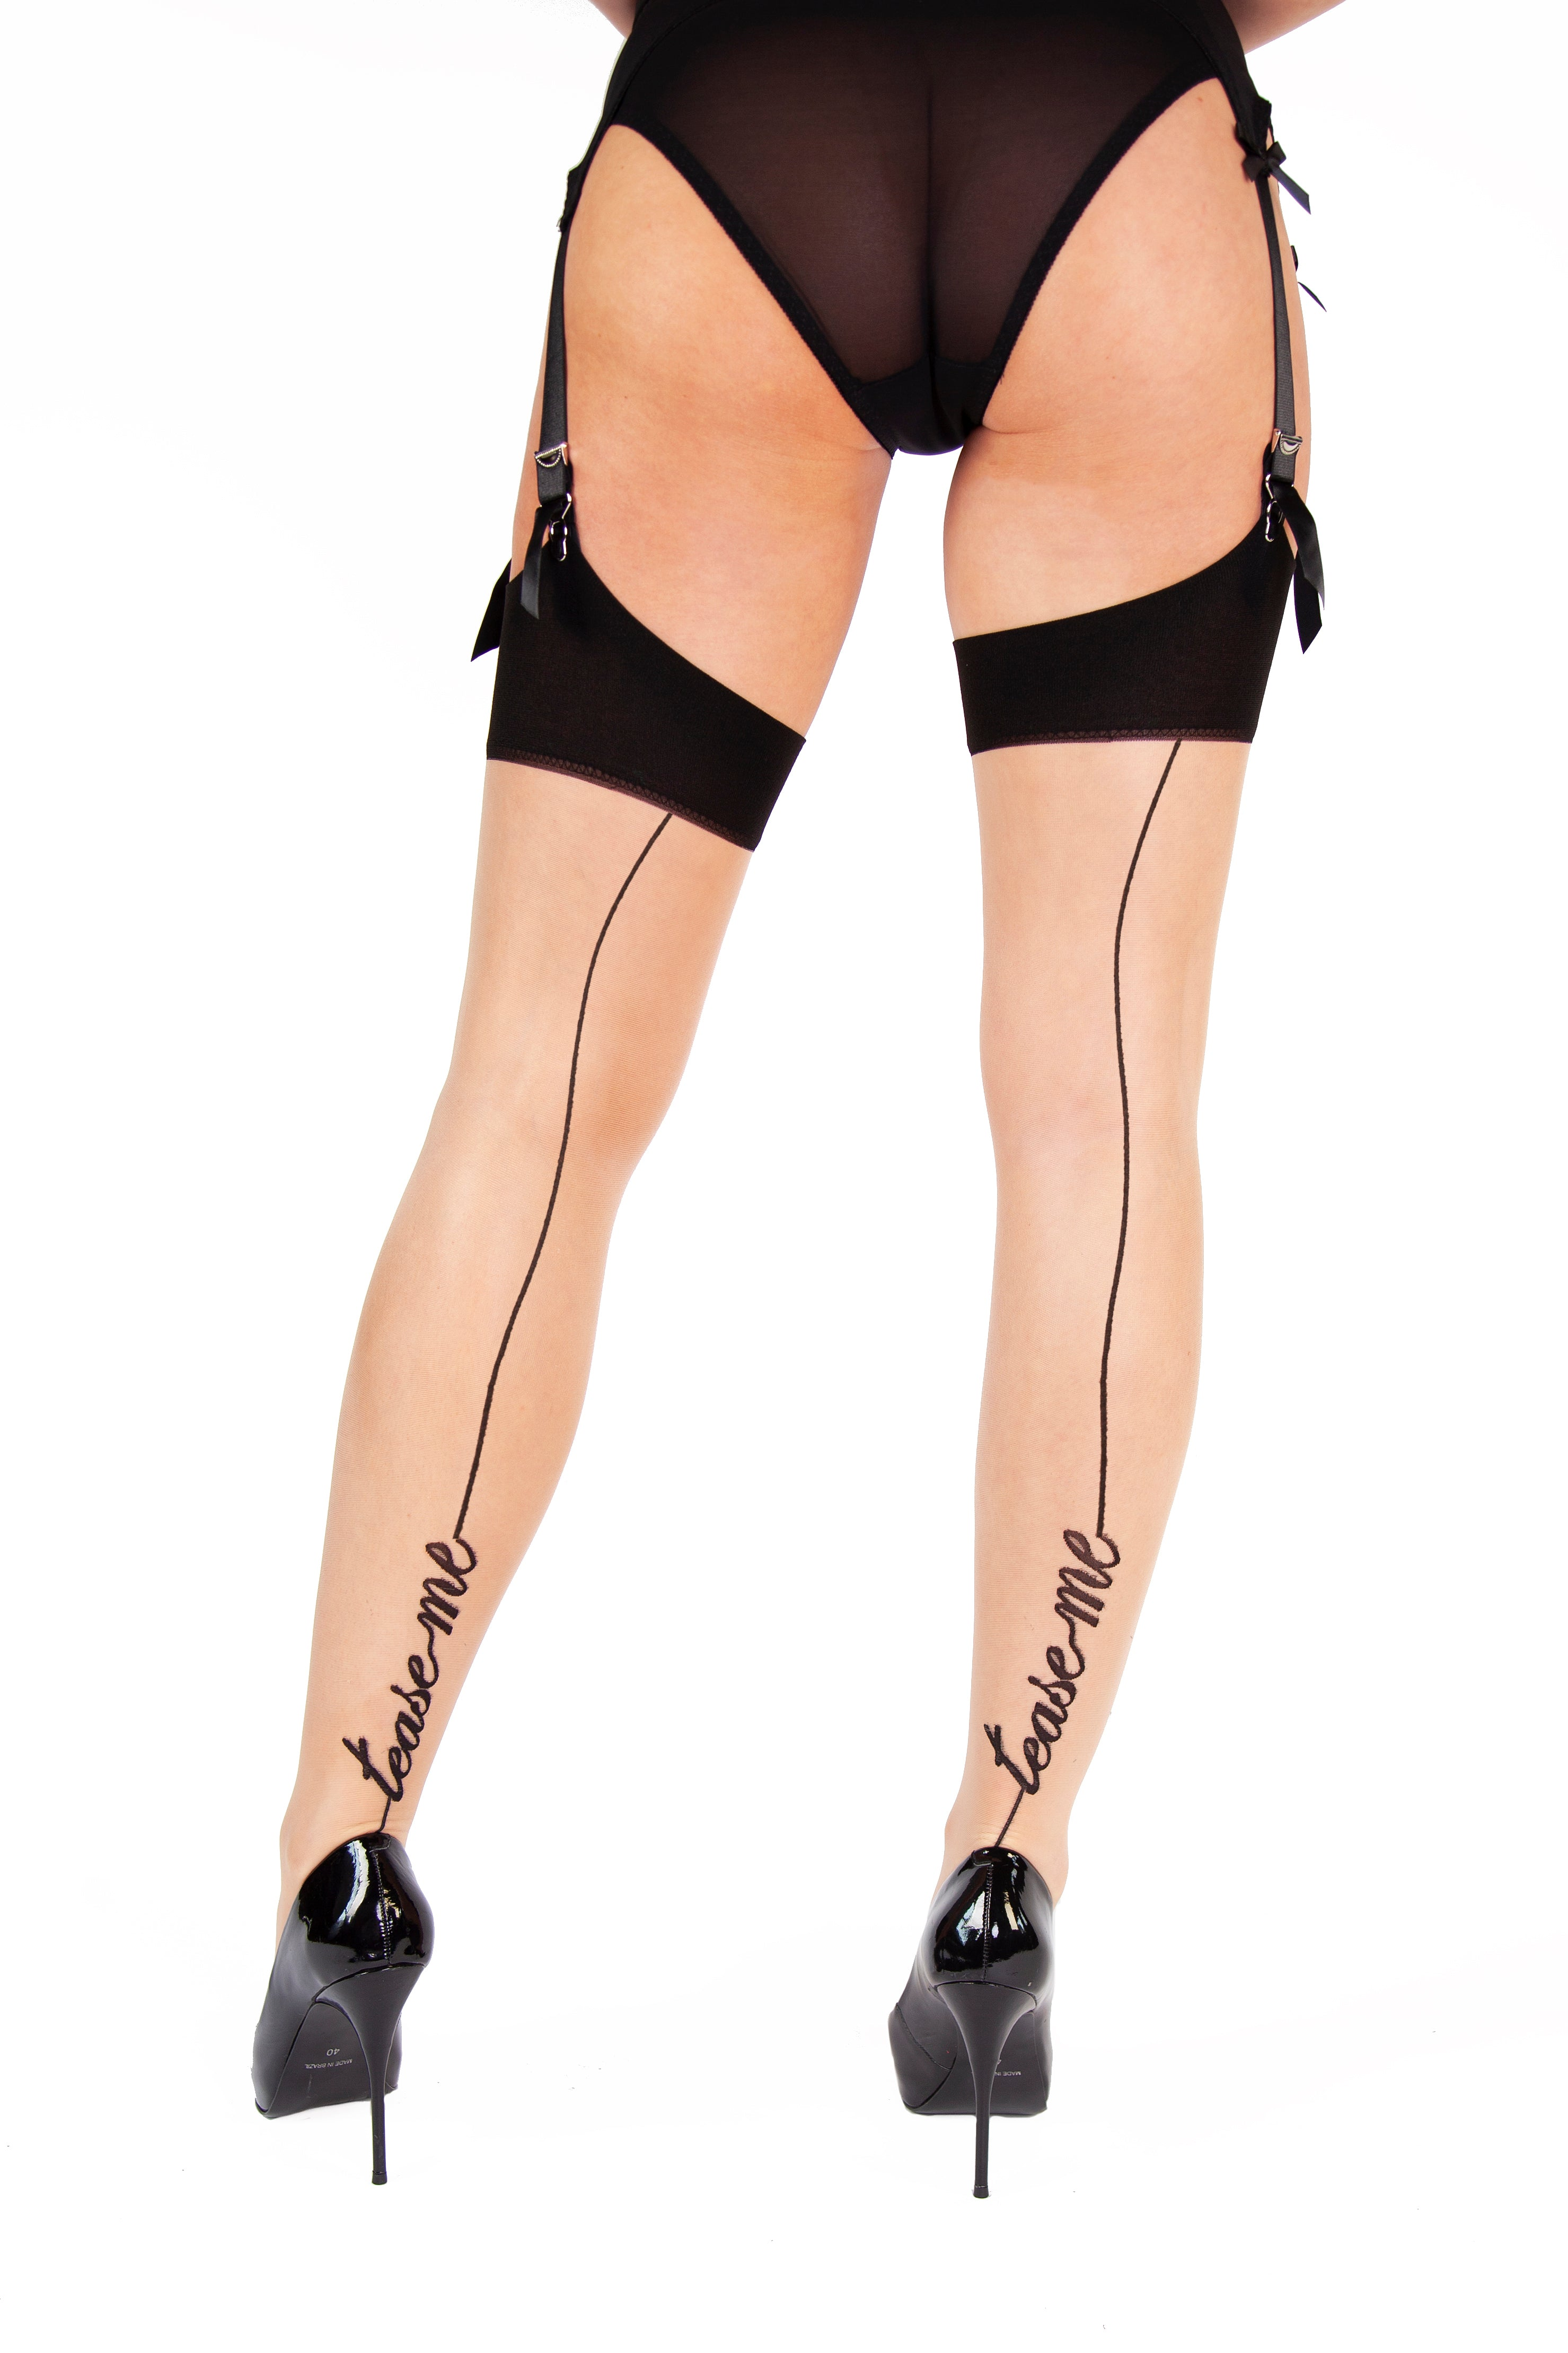 """Tease Me"" Seamed Stockings - Size 4-18"